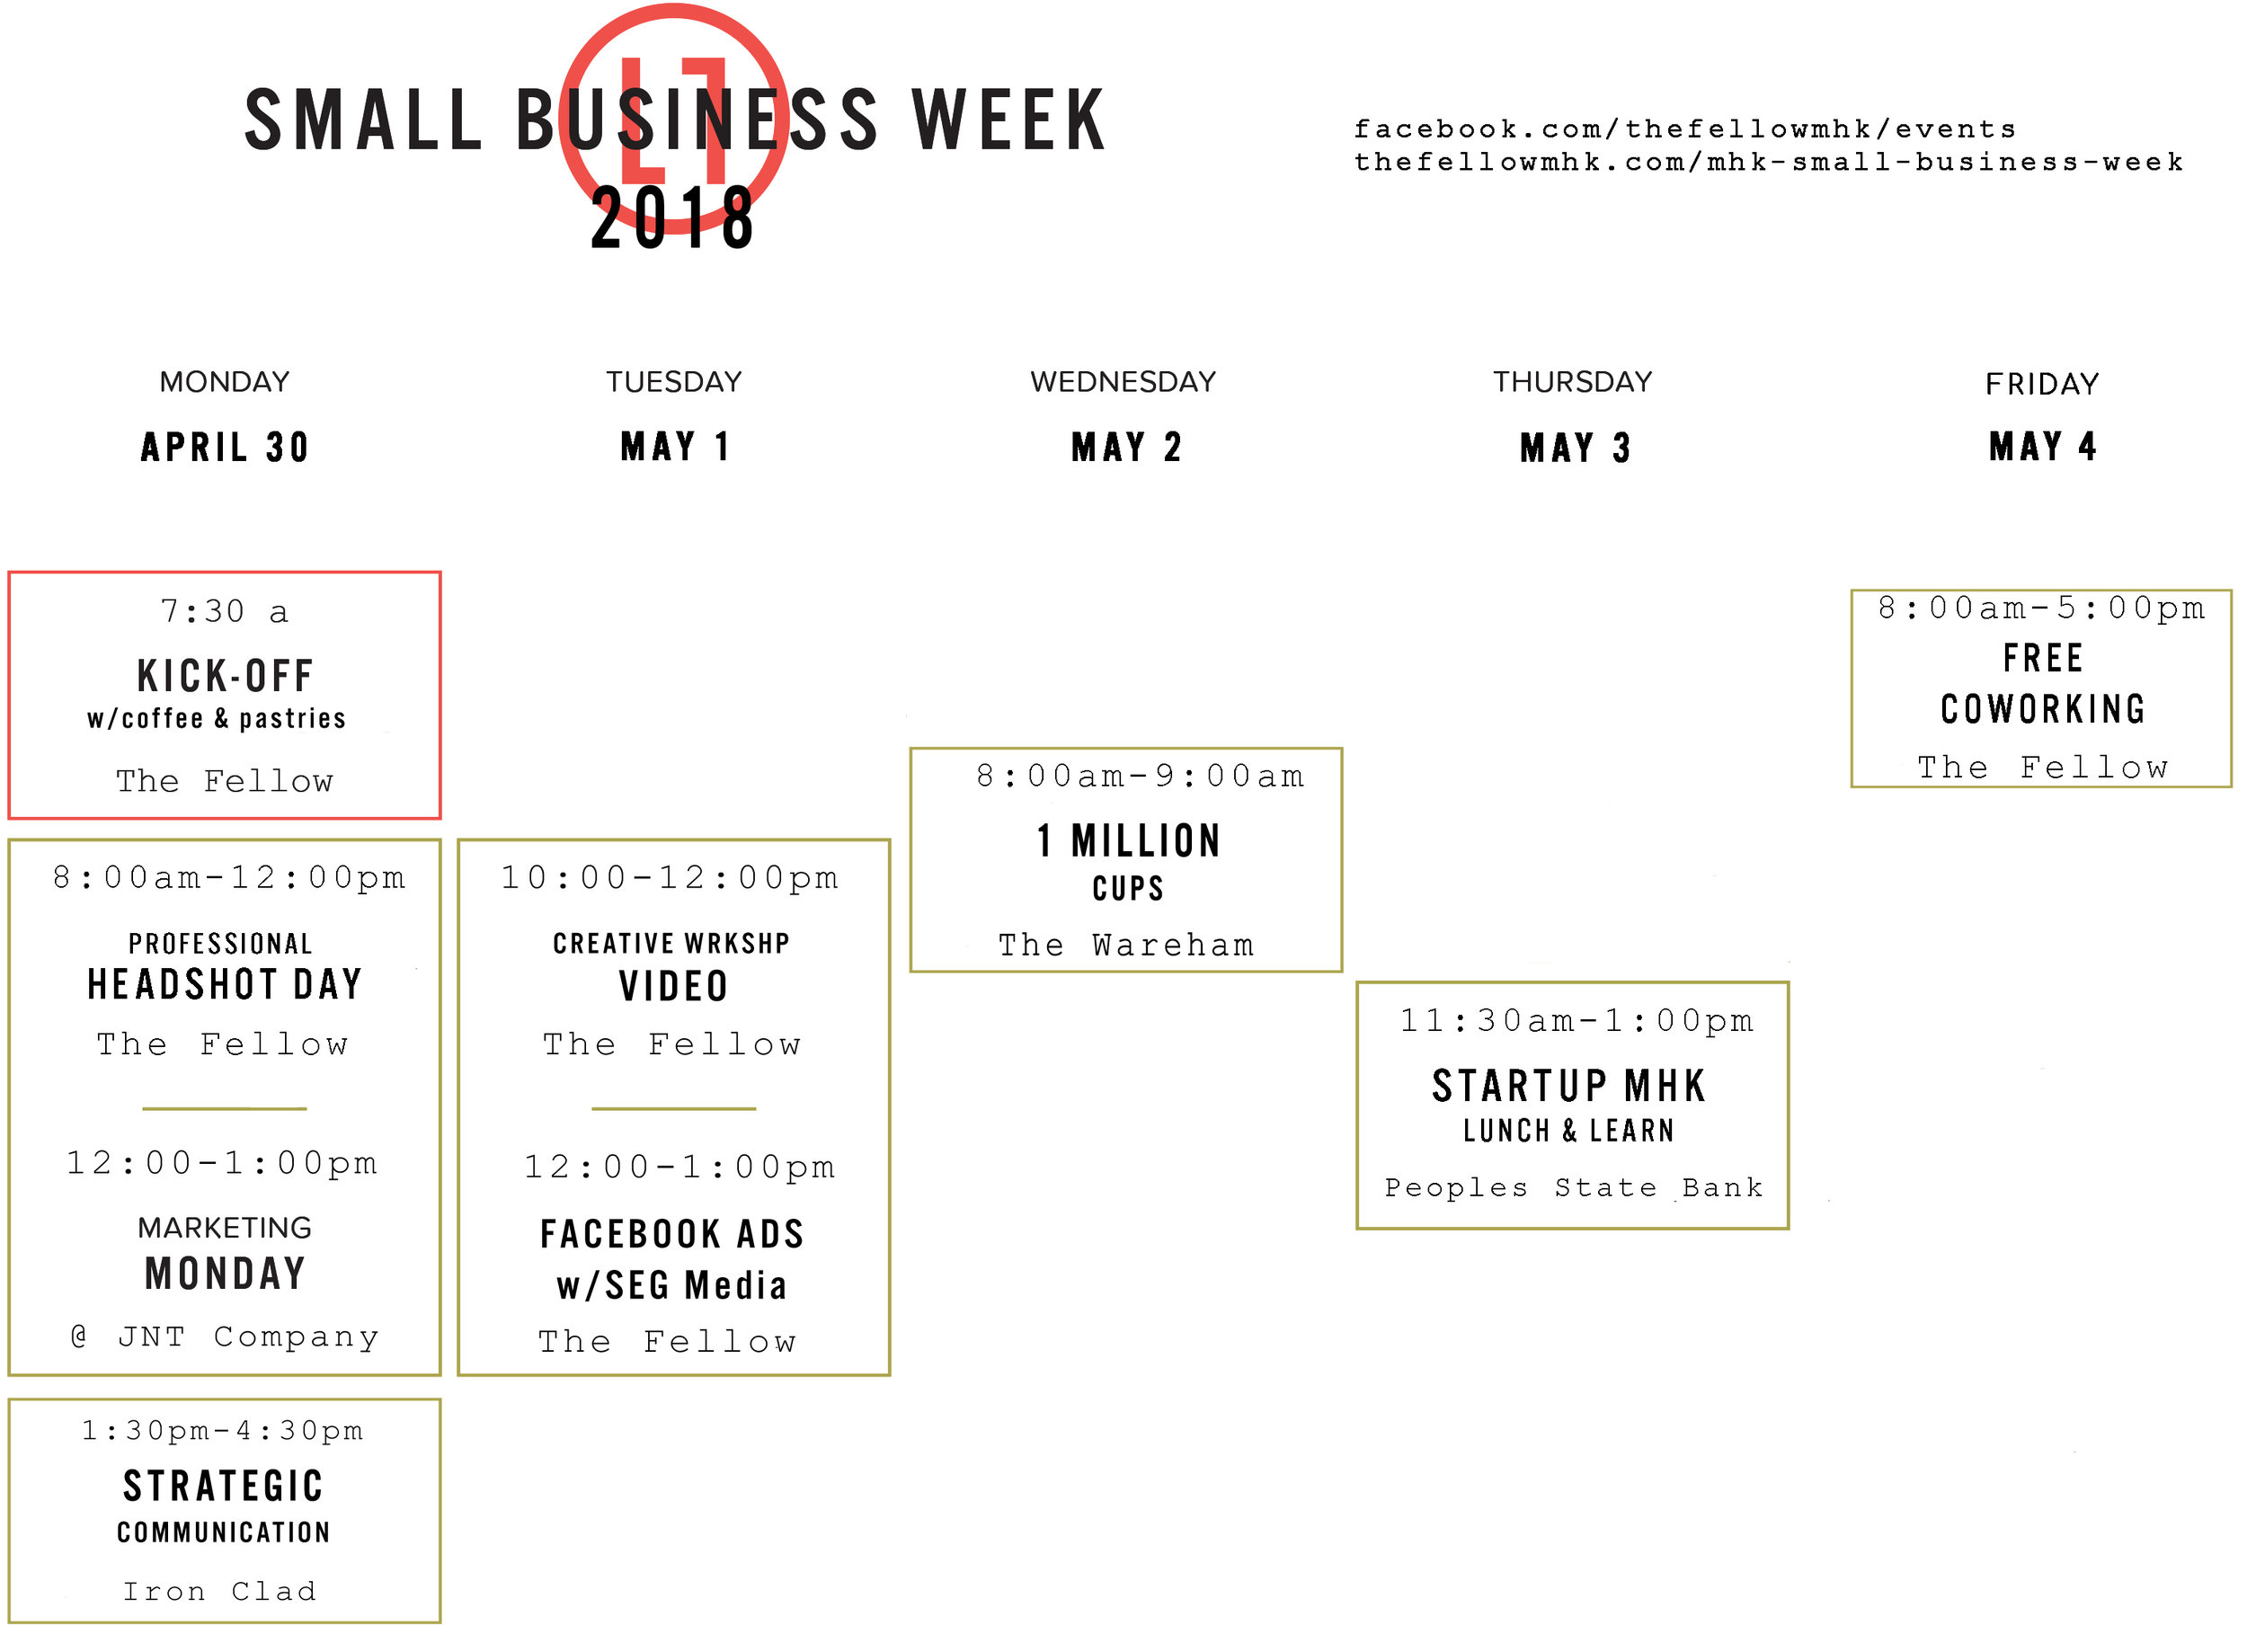 Small Business Week Calendar Manhattan Kansas The Fellow Coworking